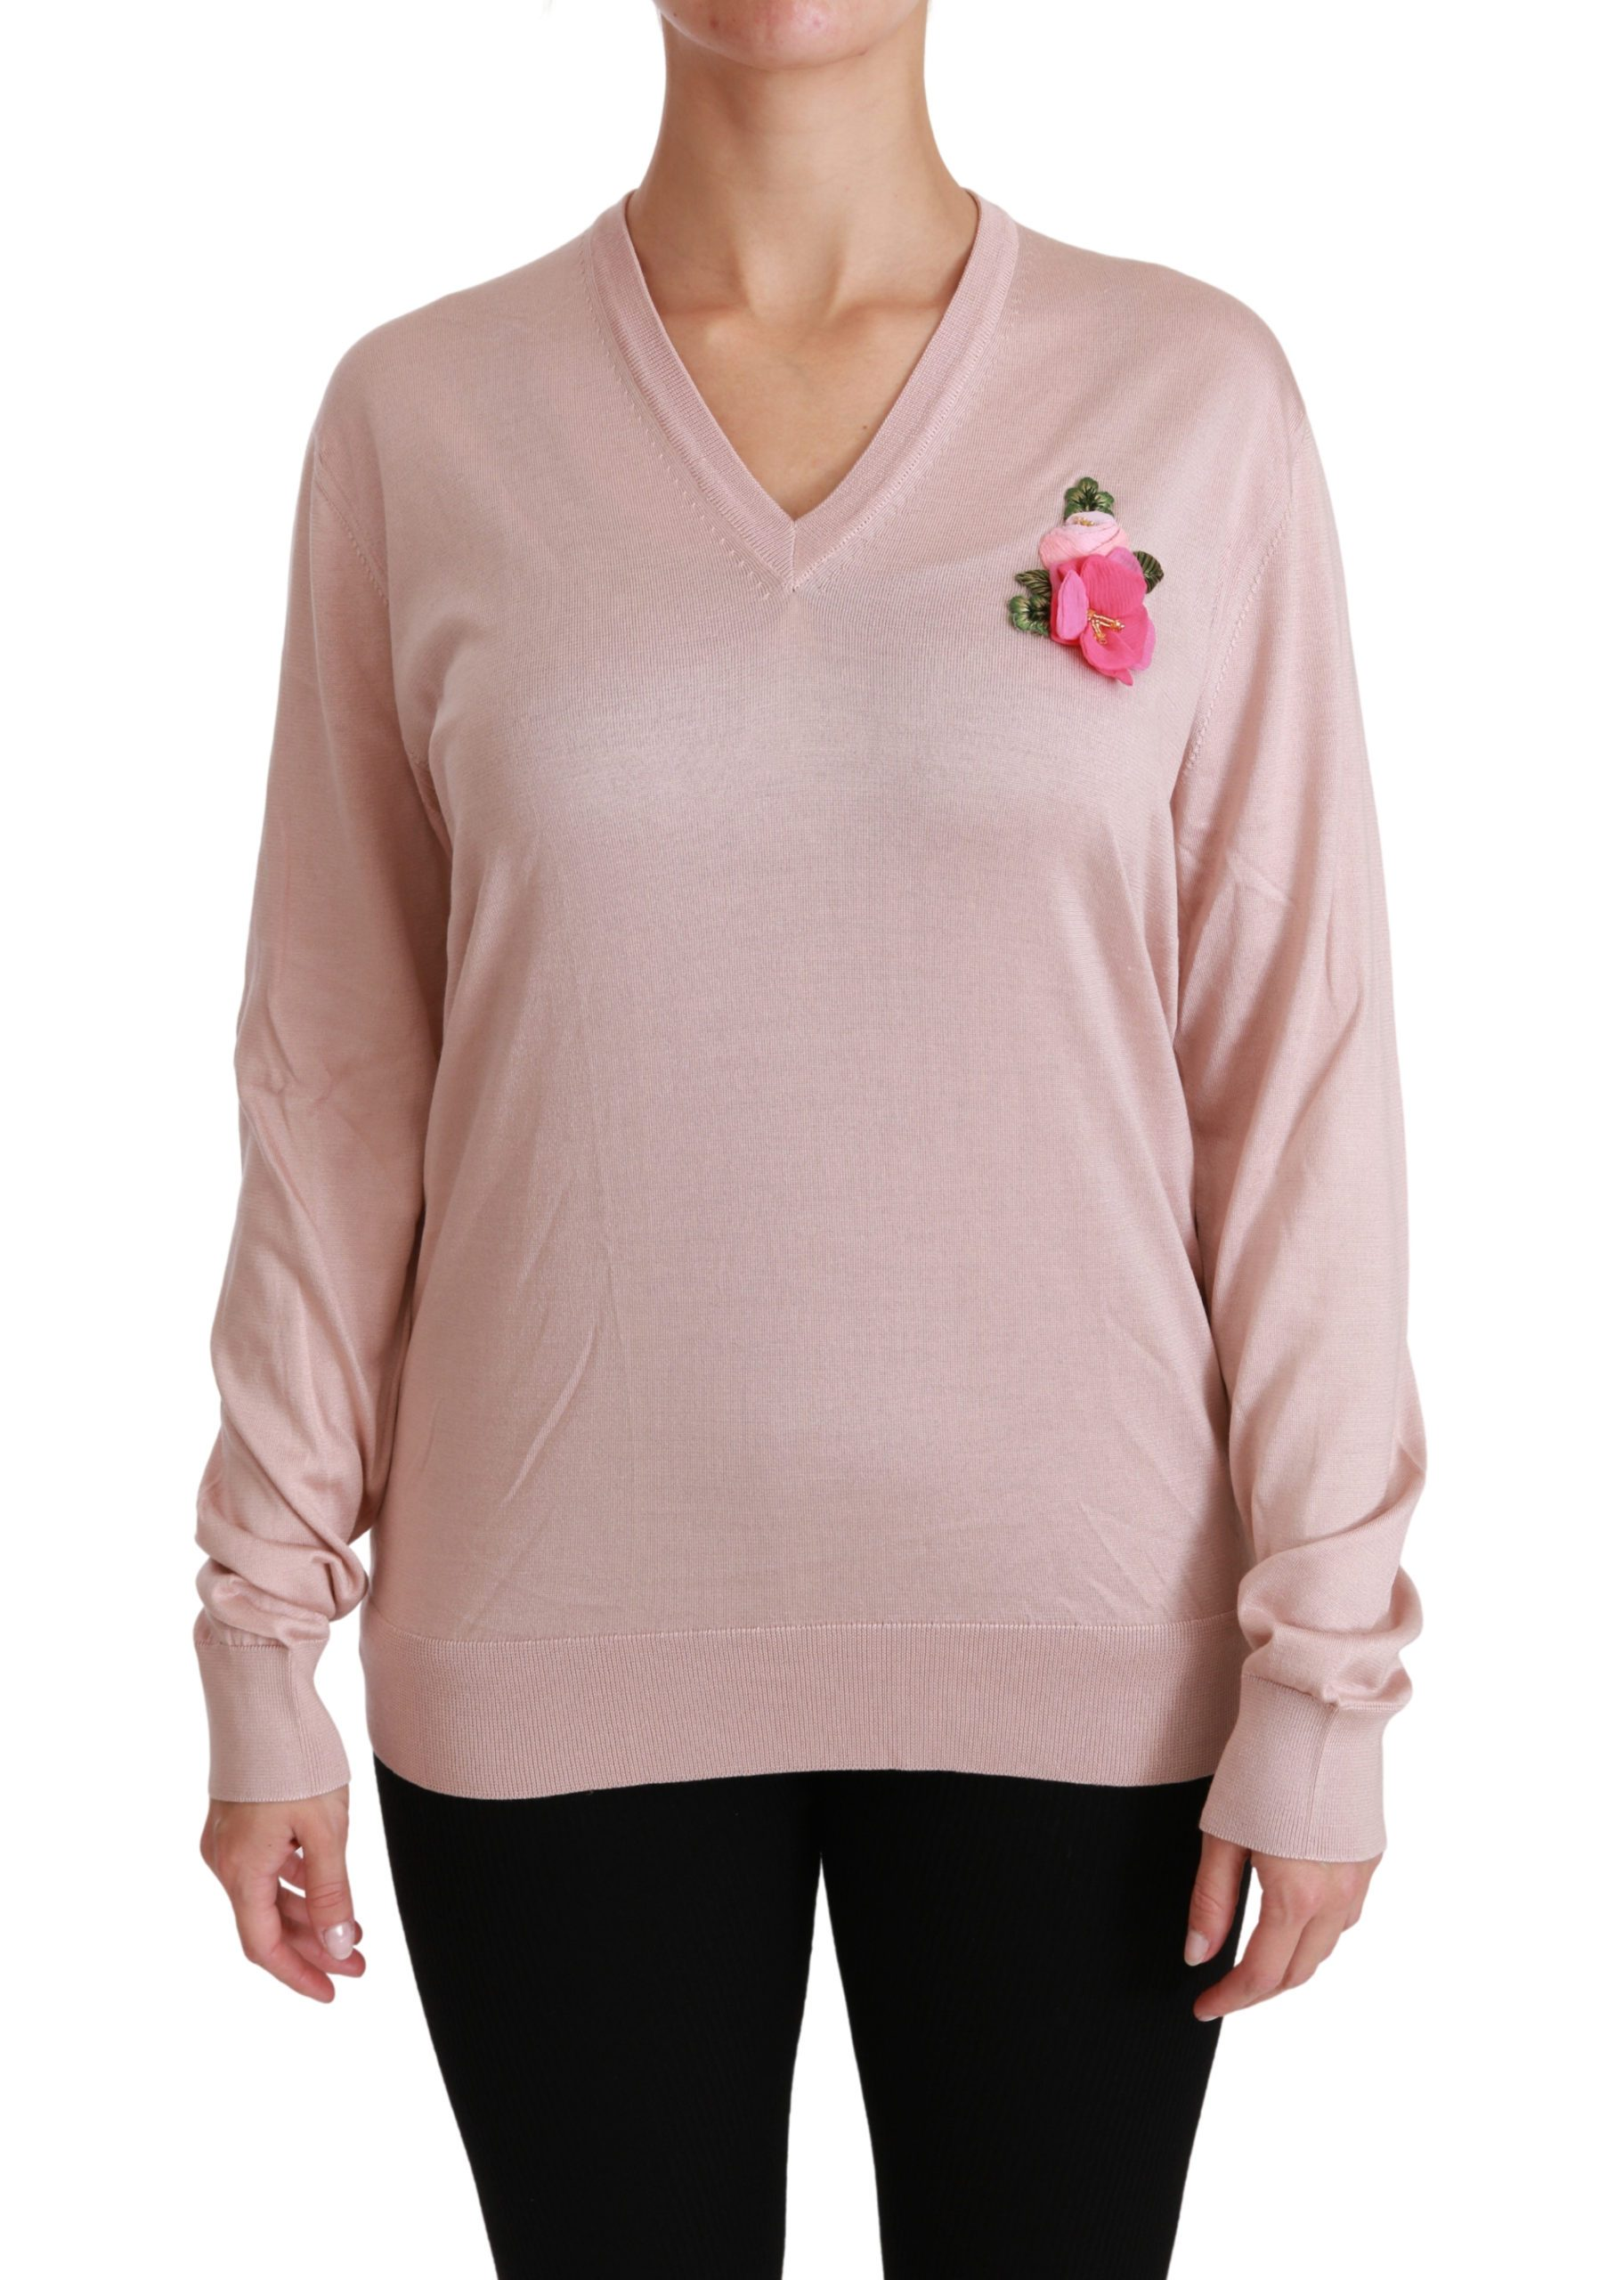 Dolce & Gabbana Women's Floral Embellished Pullover Silk Sweater Pink TSH4453 - IT36 | XS